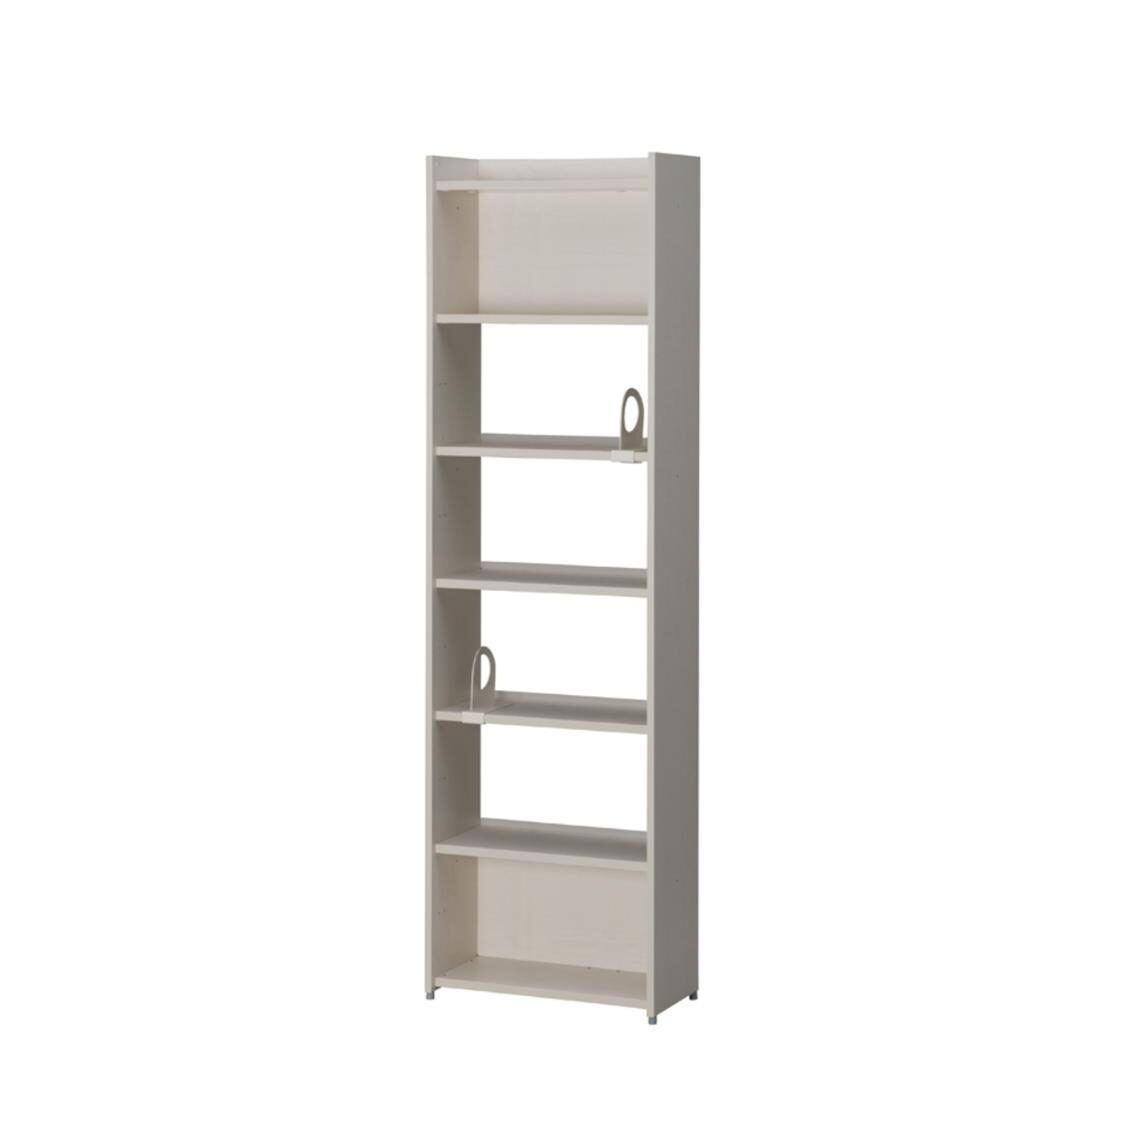 Ithaca-Neo 600W 7 Level Bookshelf FIV